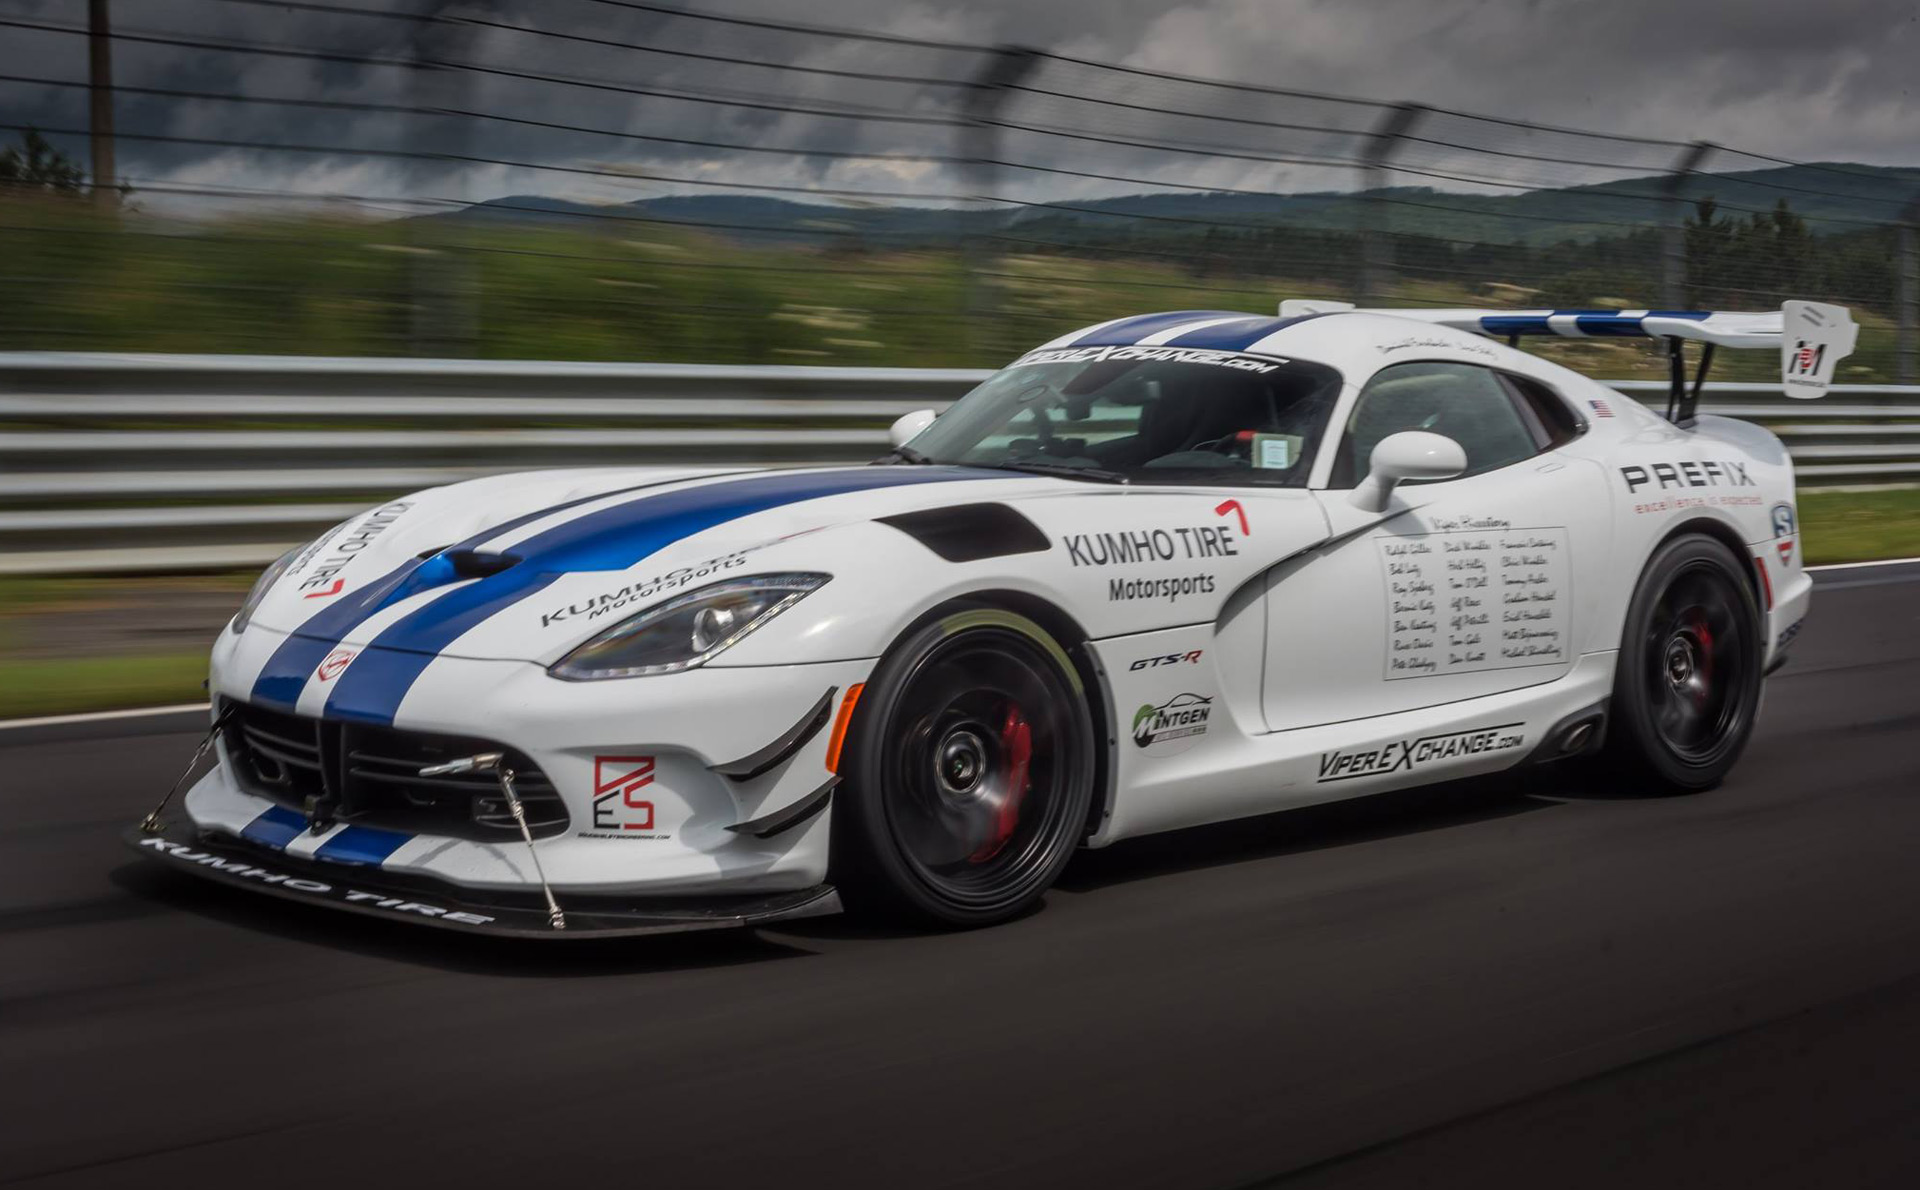 Dodge Viper ACR prepares for N rburgring